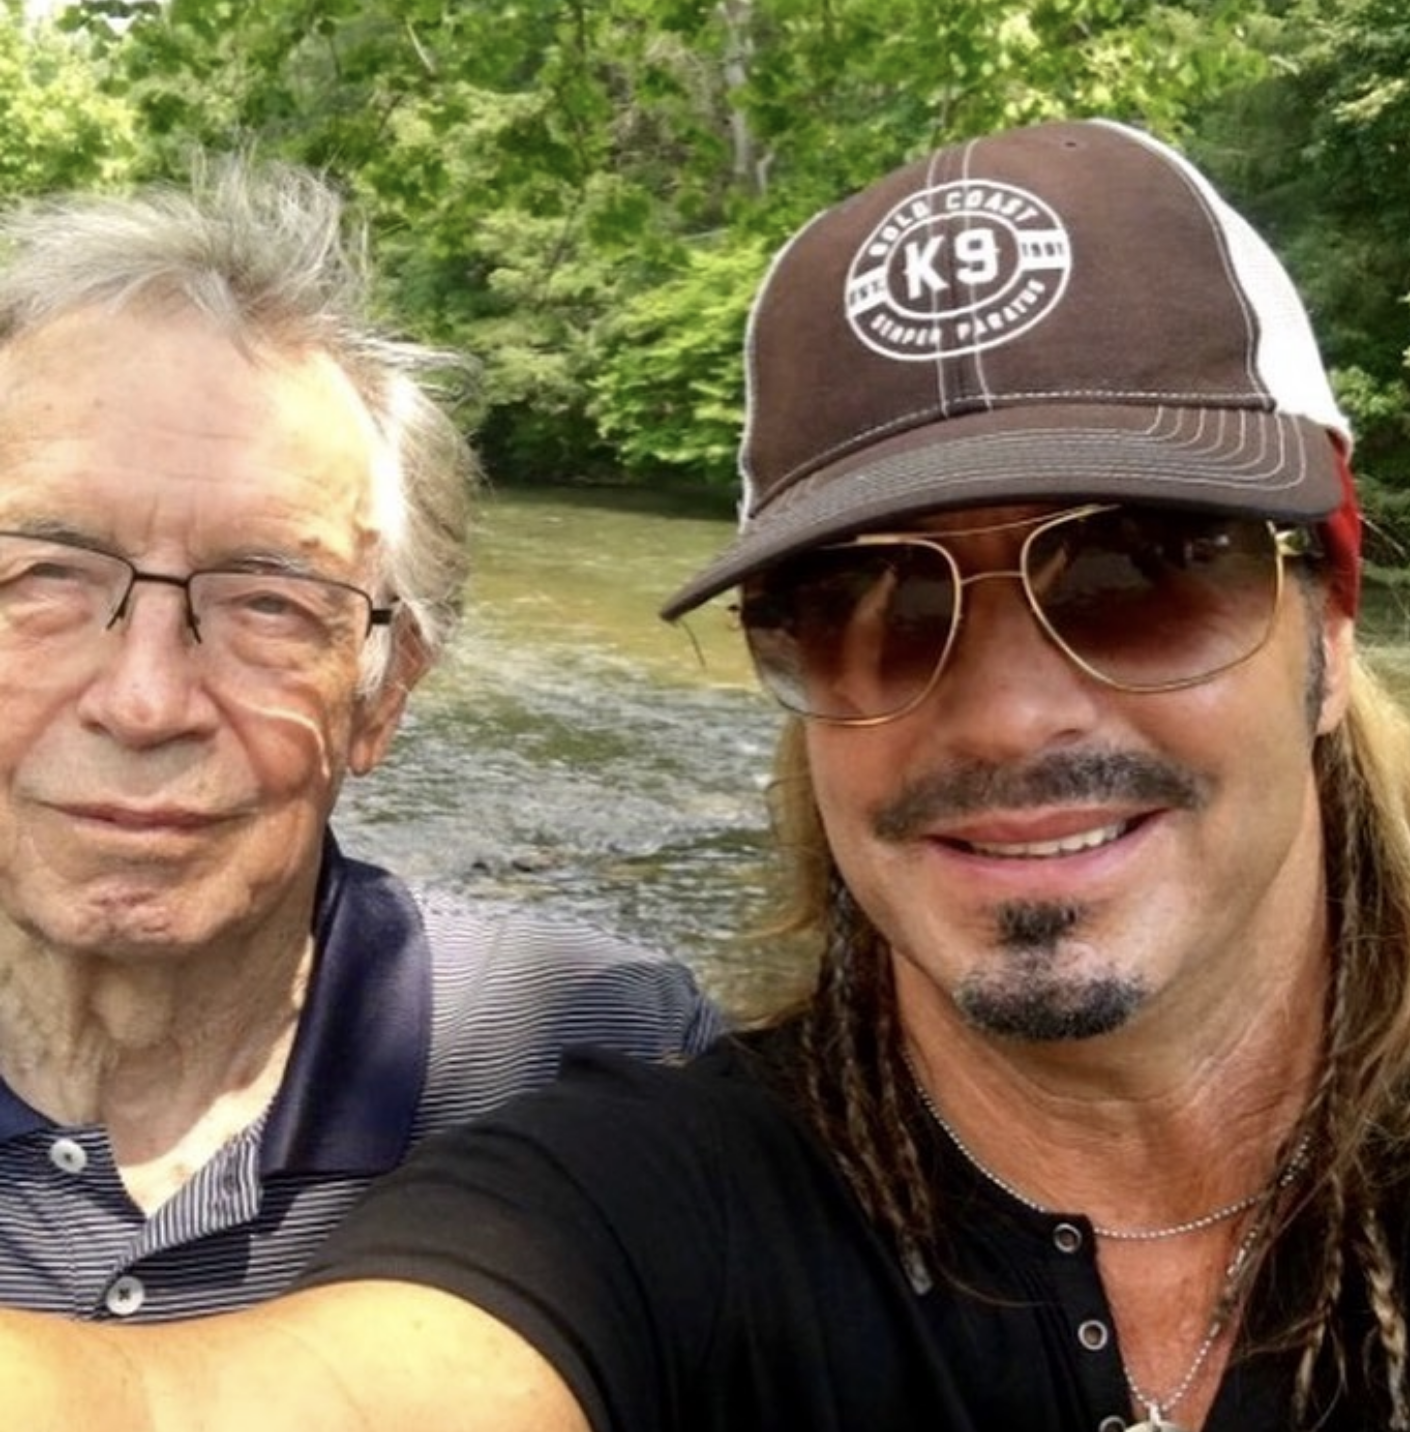 """""""Happy #FathersDay #Dad! Thank you for your service & most important, for being a great dad! 🤘🎸🇺🇸""""   Bret Michaels, who posted this Father's Day selfie with his dad on June 16, 2019"""